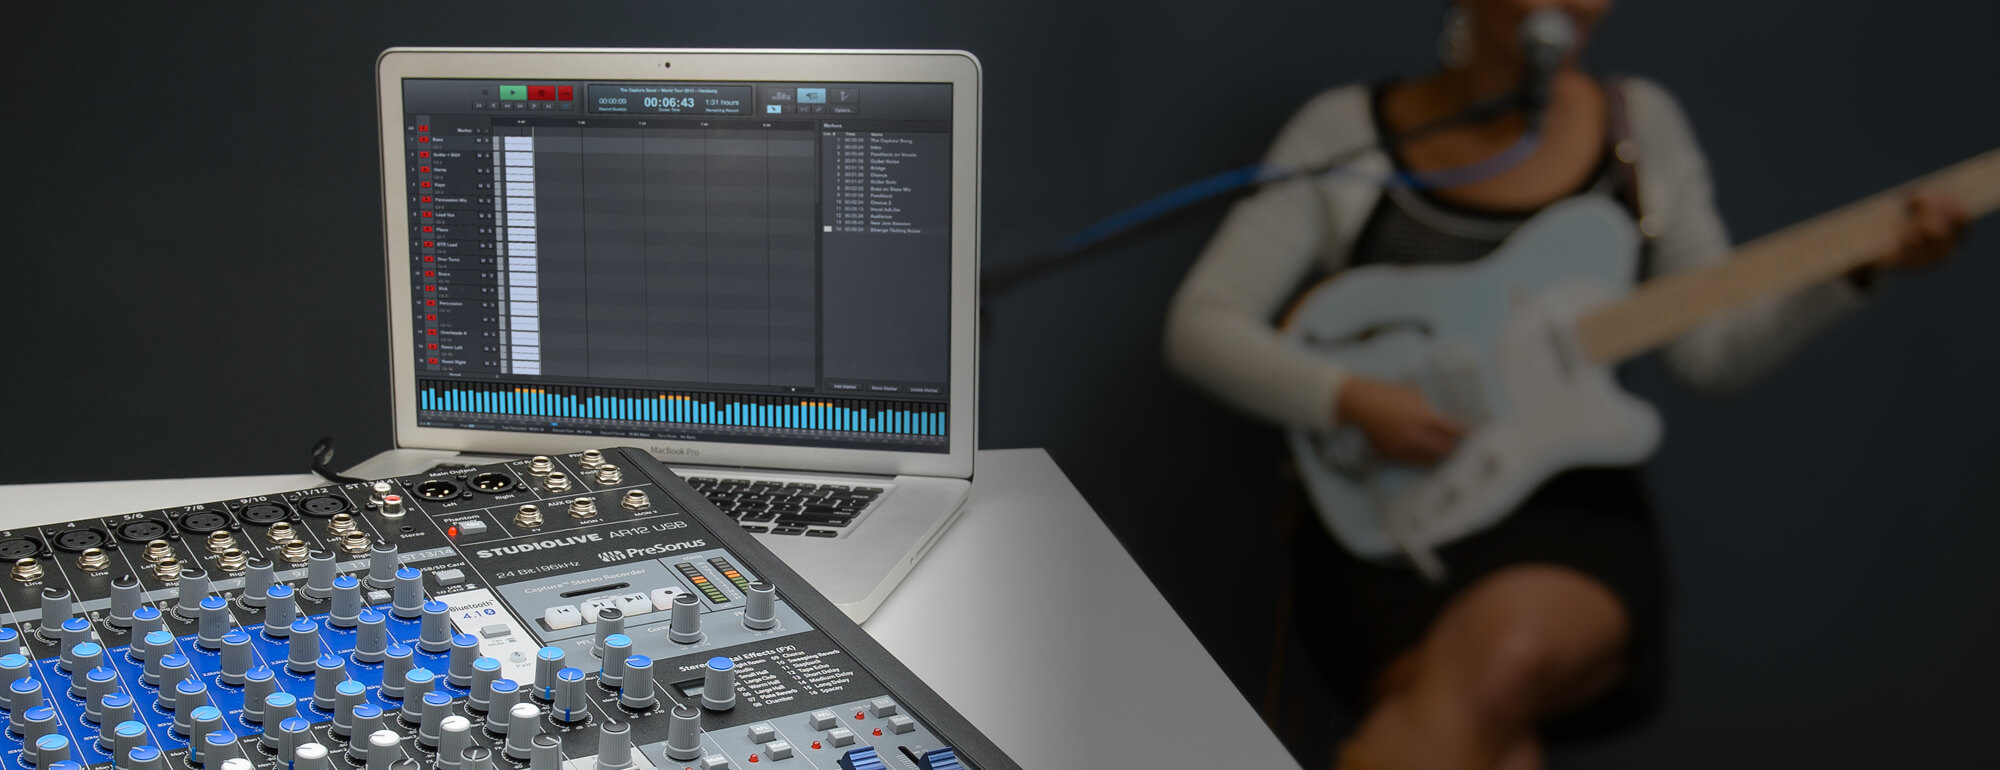 PreSonus StudioLive AR 8 USB Multitracker